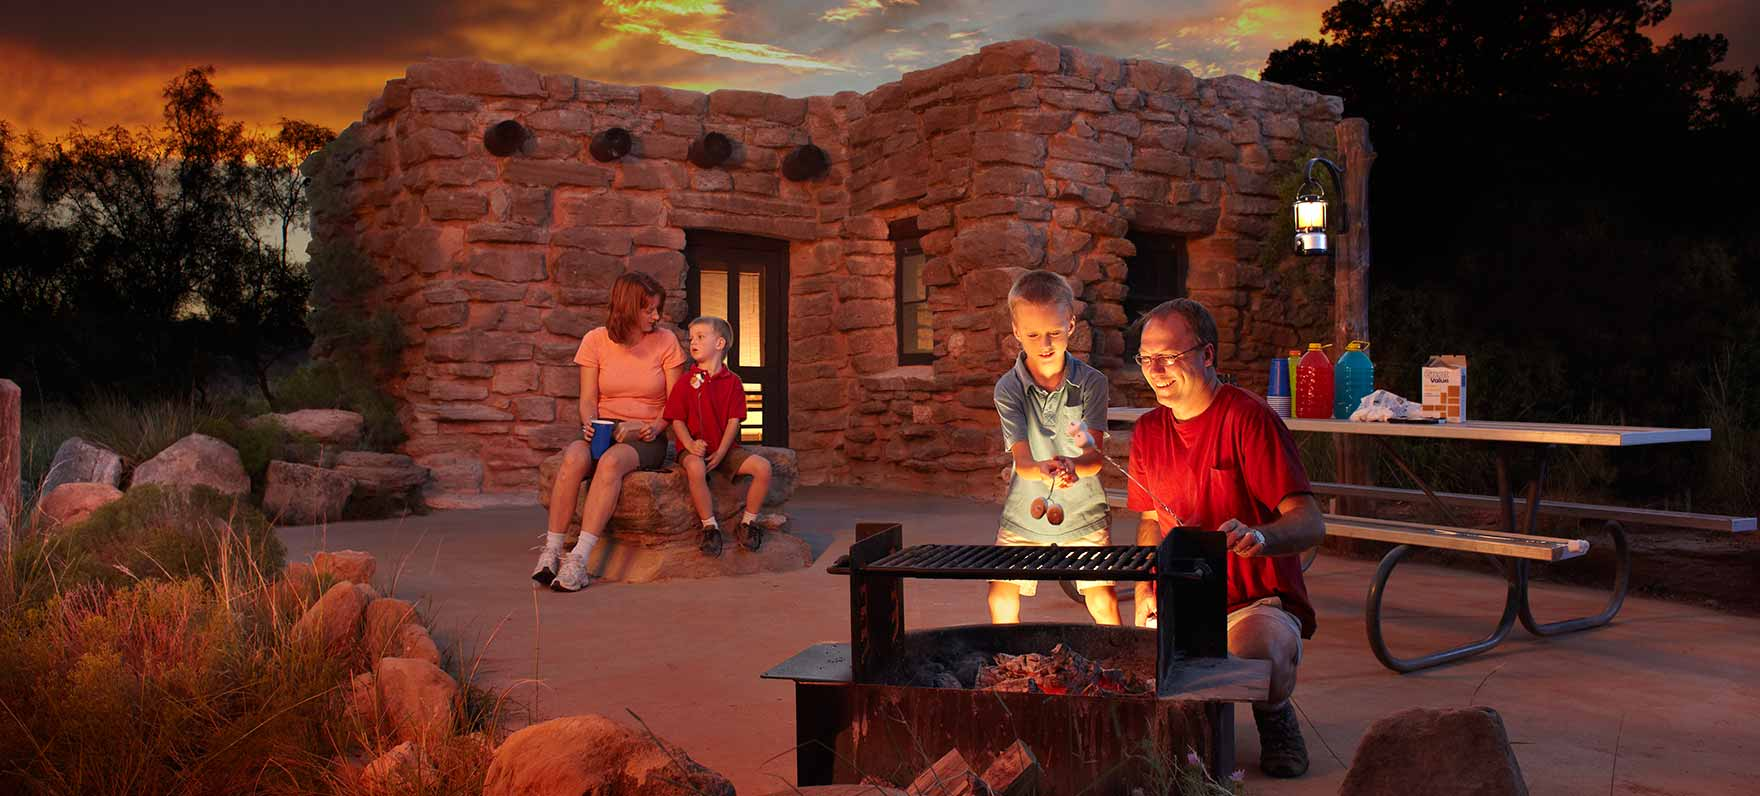 Enjoying the amenities at Palo Duro Canyon State Park.